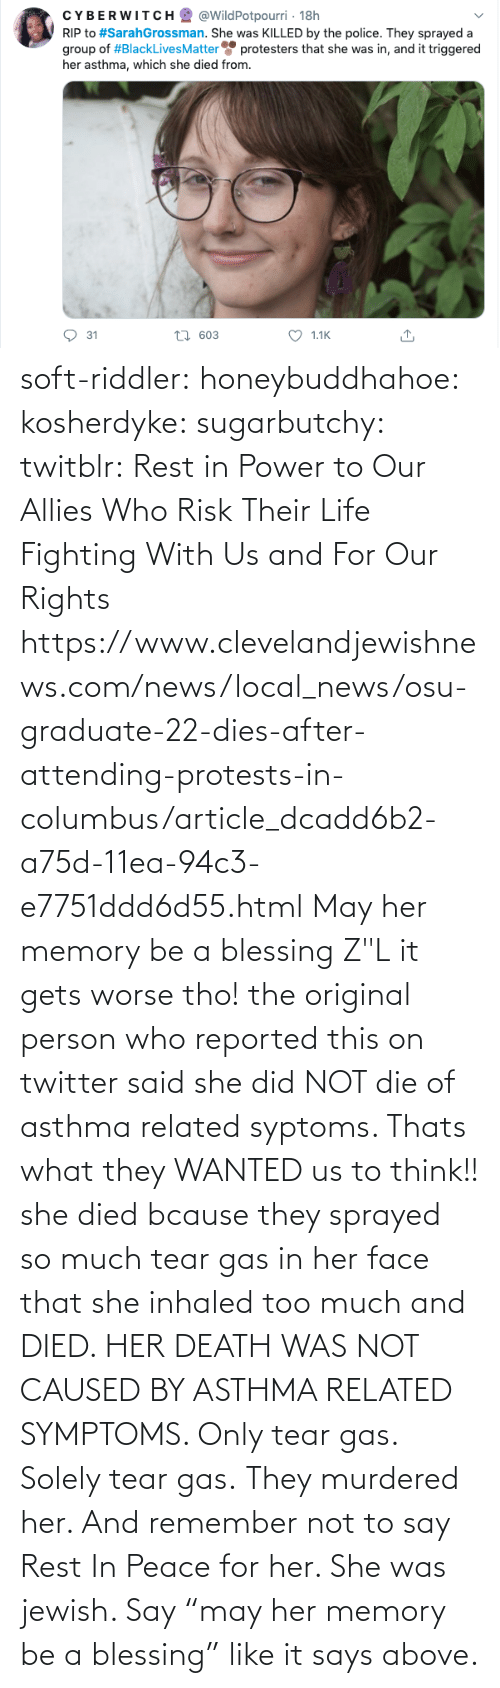 "After: soft-riddler:  honeybuddhahoe:  kosherdyke:  sugarbutchy:  twitblr: Rest in Power to Our Allies Who Risk Their Life Fighting With Us and For Our Rights https://www.clevelandjewishnews.com/news/local_news/osu-graduate-22-dies-after-attending-protests-in-columbus/article_dcadd6b2-a75d-11ea-94c3-e7751ddd6d55.html    May her memory be a blessing Z""L  it gets worse tho! the original person who reported this on twitter said she did NOT die of asthma related syptoms. Thats what they WANTED us to think!! she died bcause they sprayed so much tear gas in her face that she inhaled too much and DIED. HER DEATH WAS NOT CAUSED BY ASTHMA RELATED SYMPTOMS. Only tear gas. Solely tear gas. They murdered her.     And remember not to say Rest In Peace for her. She was jewish. Say ""may her memory be a blessing"" like it says above."